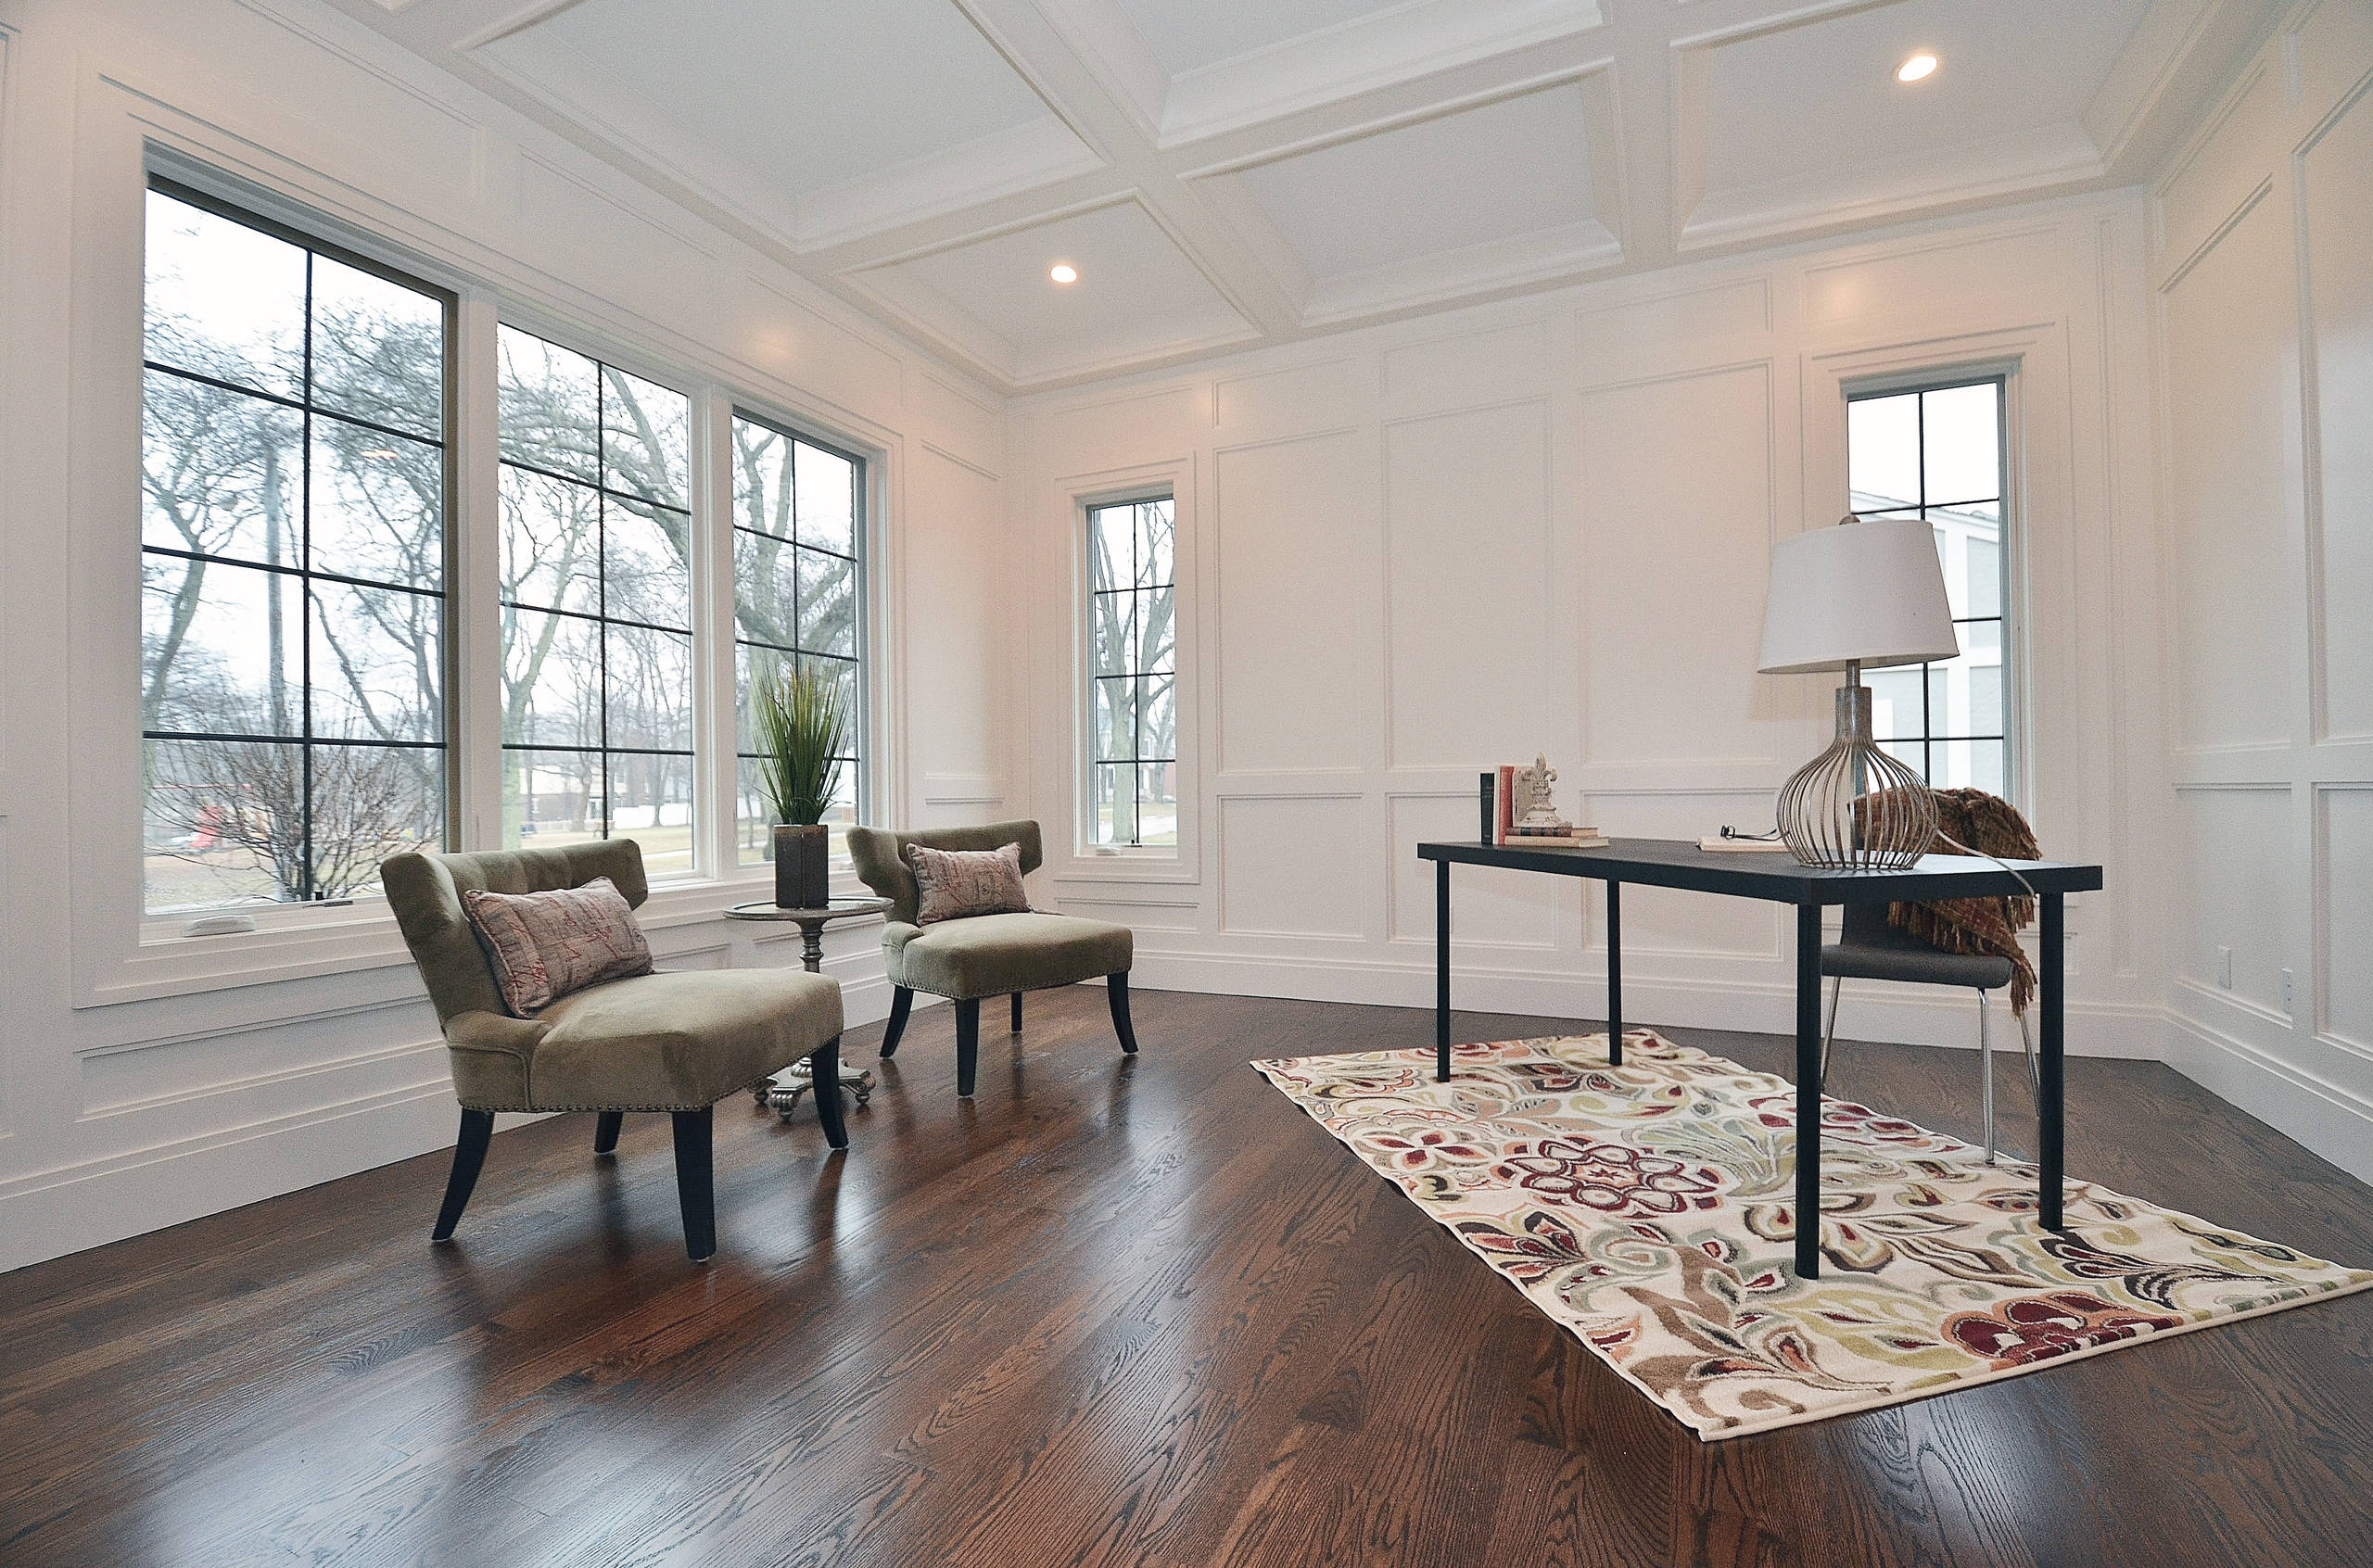 Stalburg Design provided all of the cabinet design, interior selections and custom details for this 5 bedroom, 6 bathroom spec home in downtown Birmingham, Michigan. Working within our builder's budge